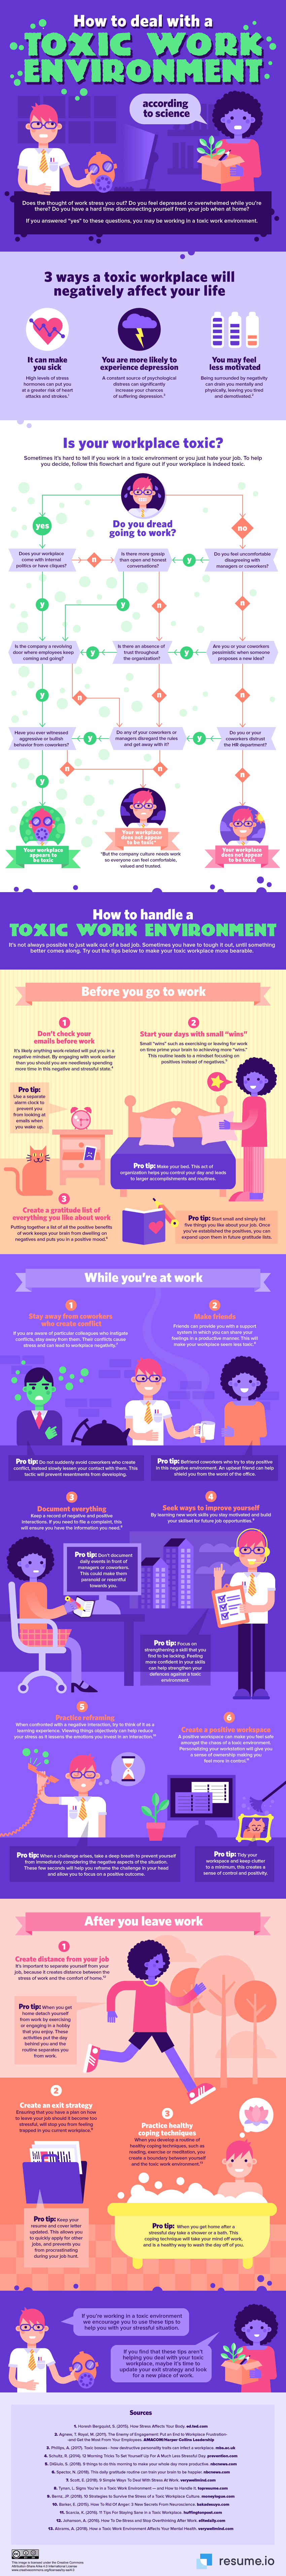 infographic about toxic work environment.